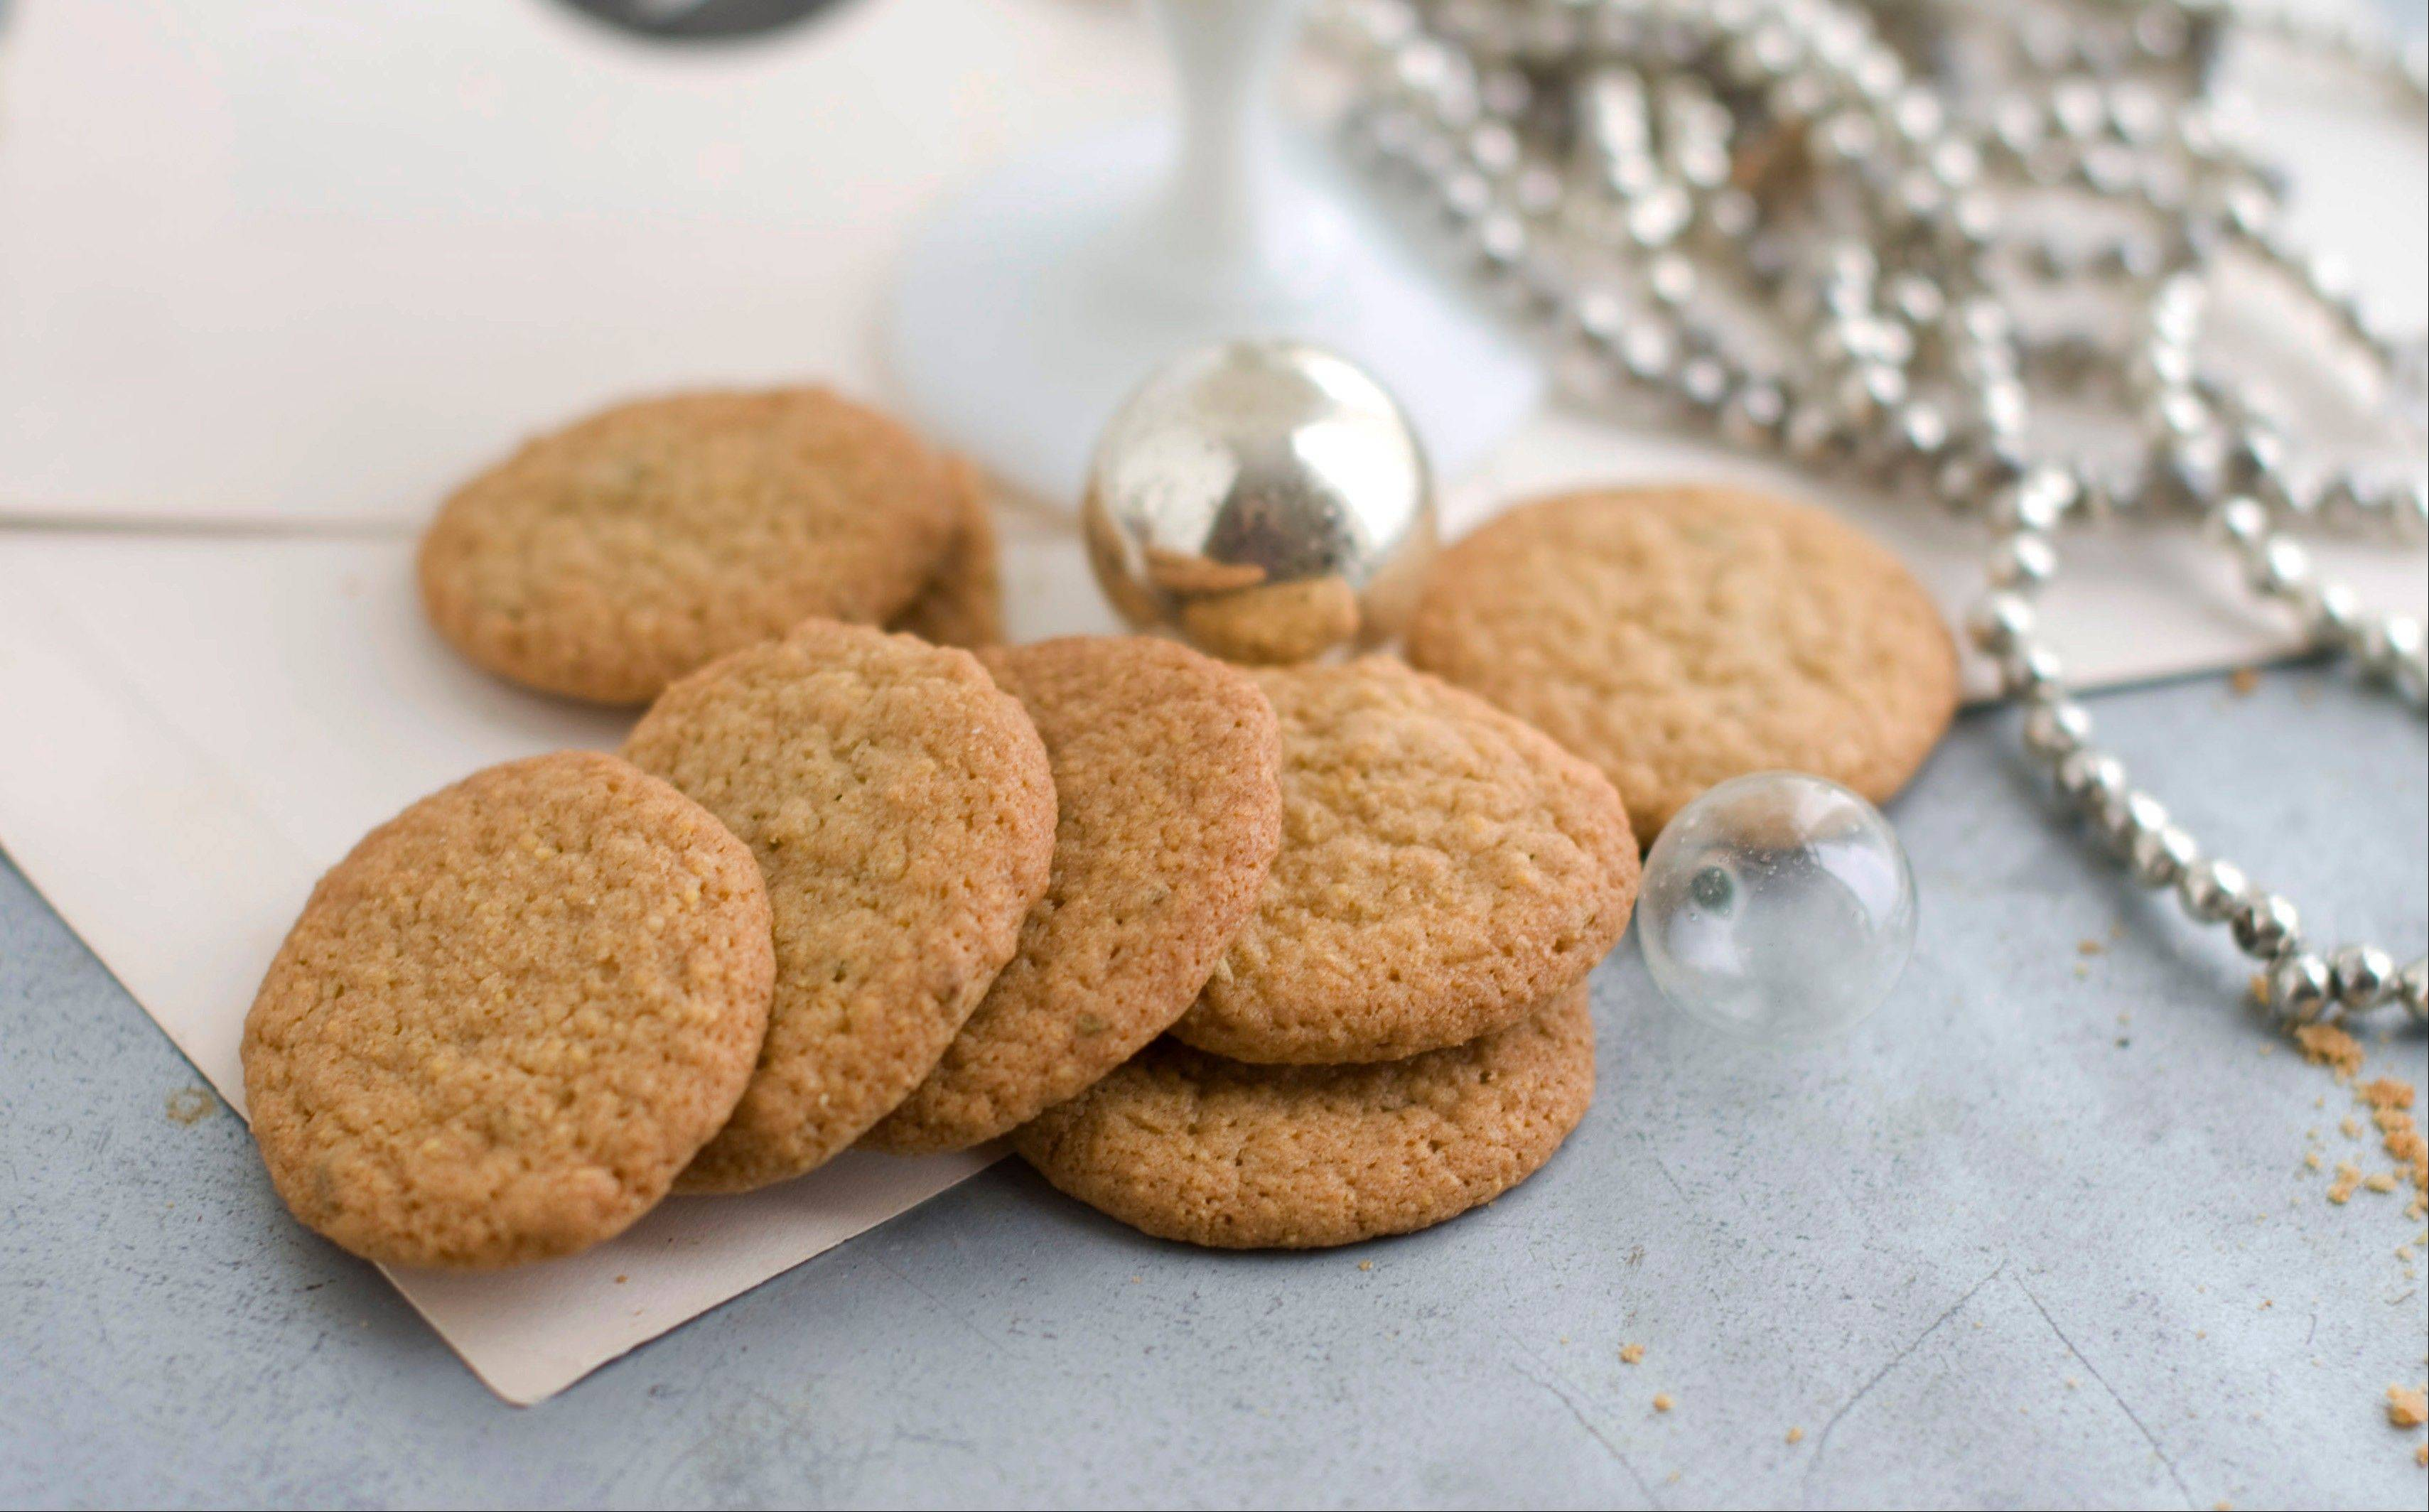 Fennel Cornmeal Wafers are delicate in both texture and sweetness. They would go great with a glass of dessert wine, or as an accompaniment to a cheese course.